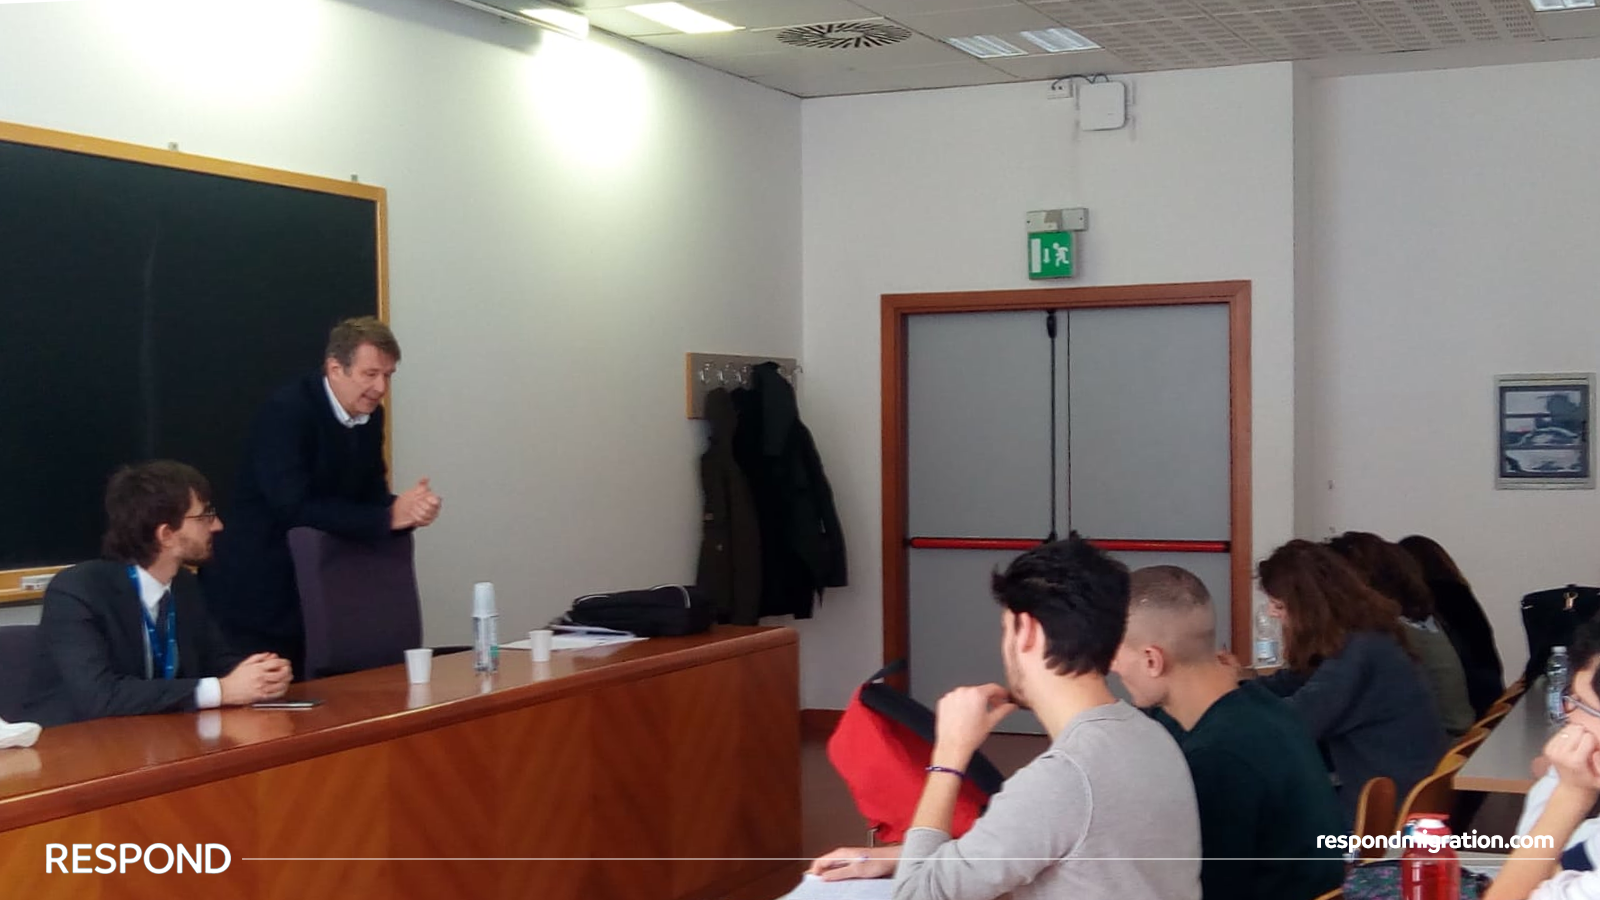 Professor Petrovic explaining the Italian incoherent approach to integration in his class at the  University of Florence  on the 22nd March 2019